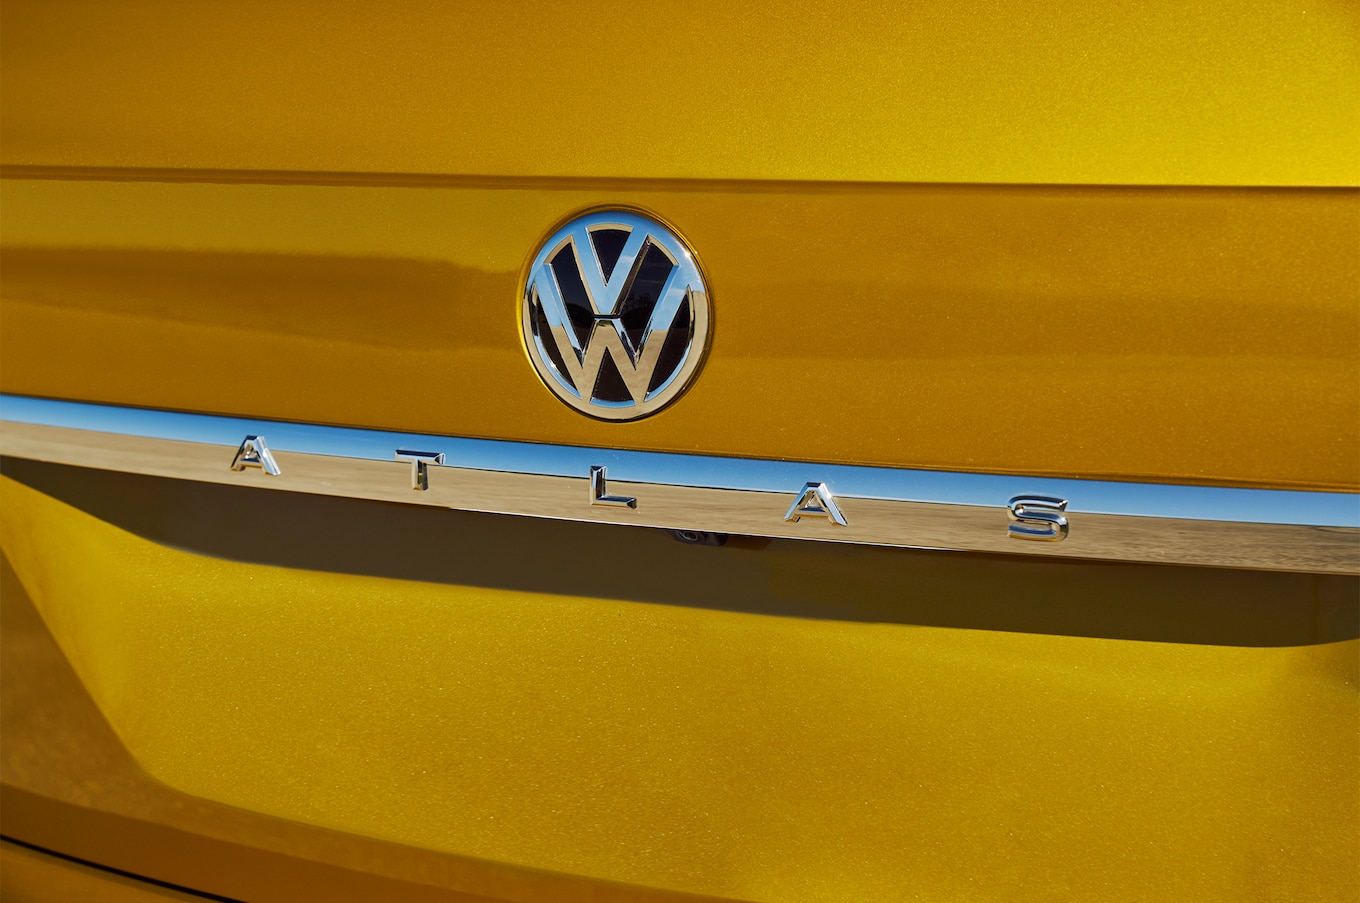 2018 Volkswagen Atlas badge